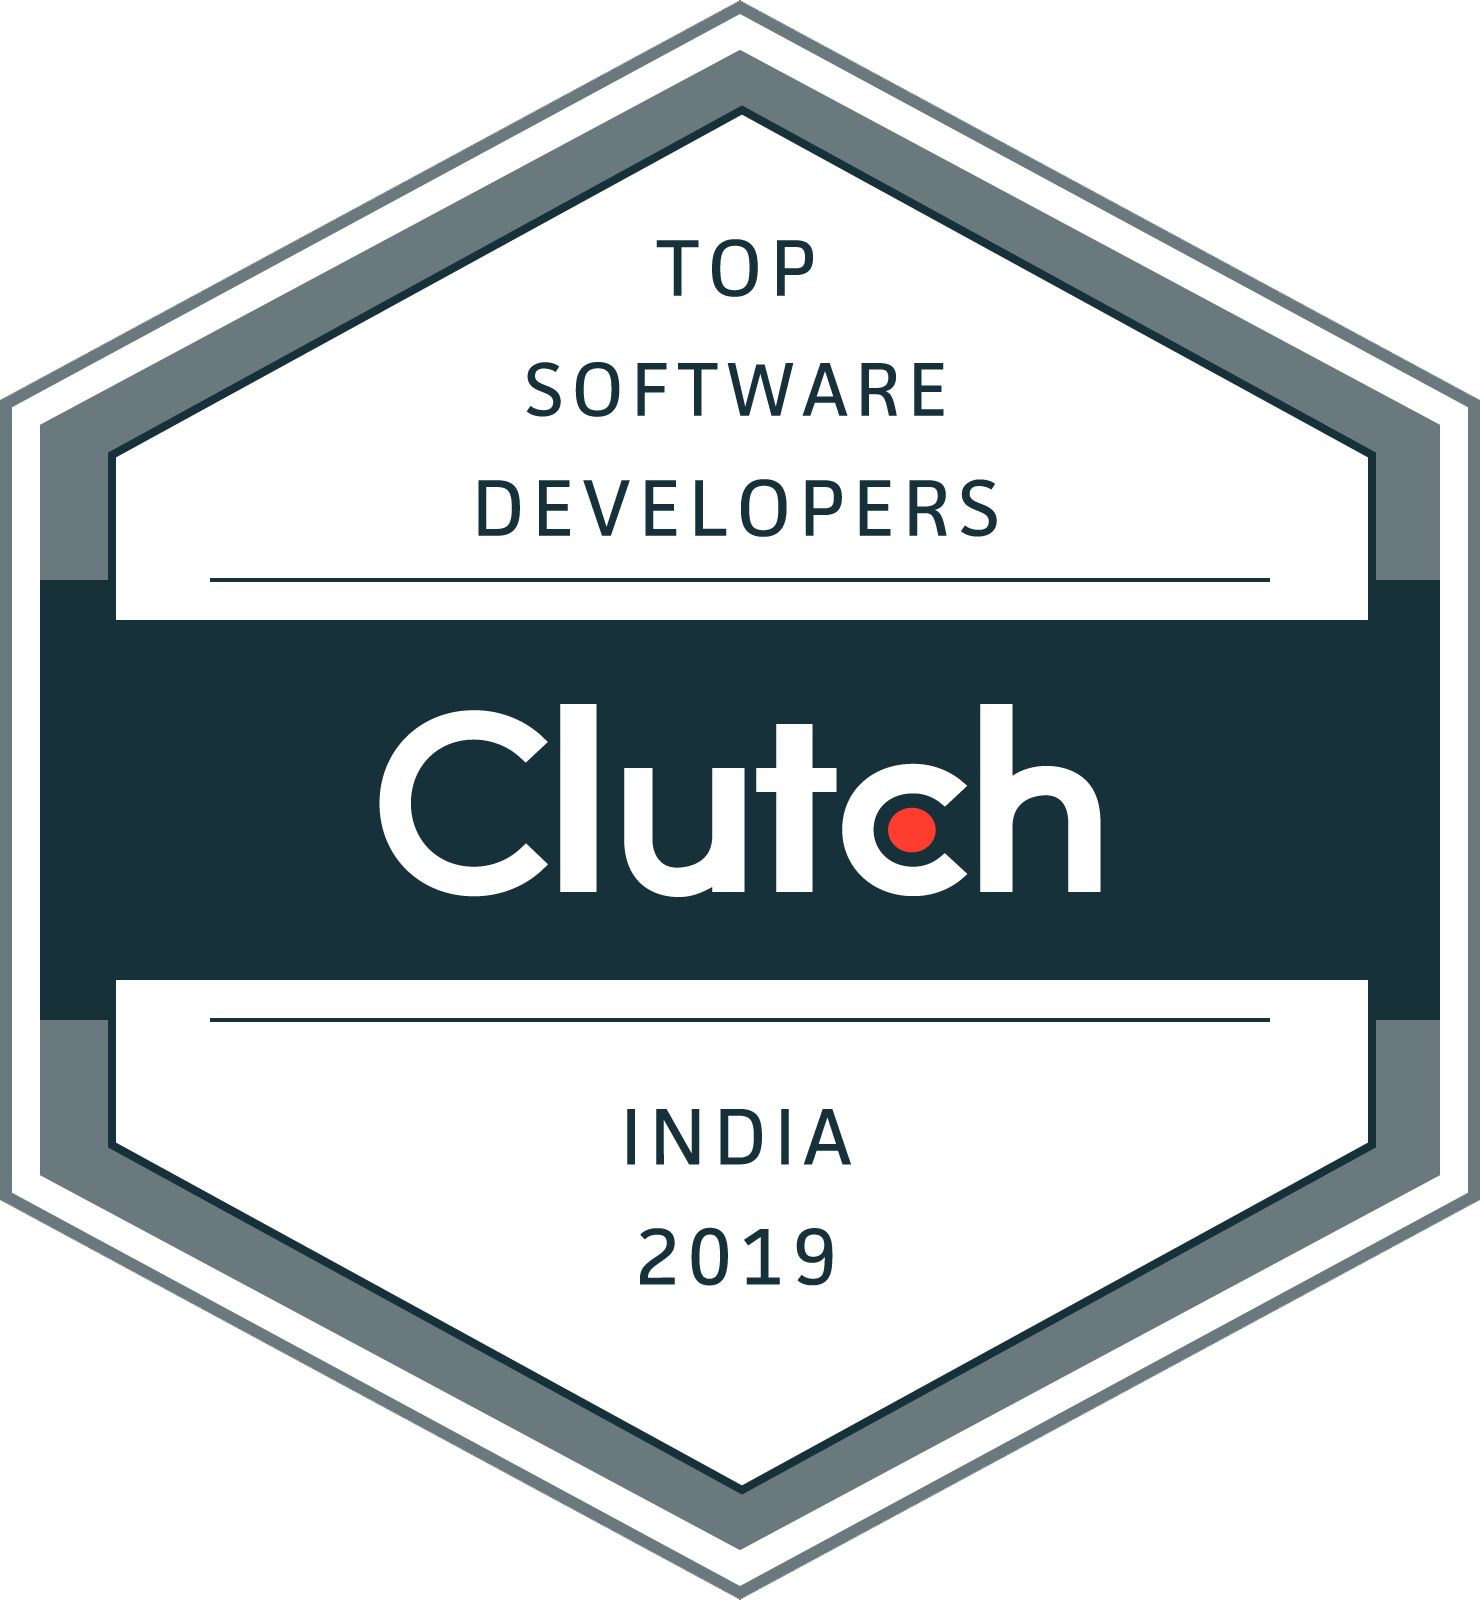 Top Software Developers - Clutch 2019